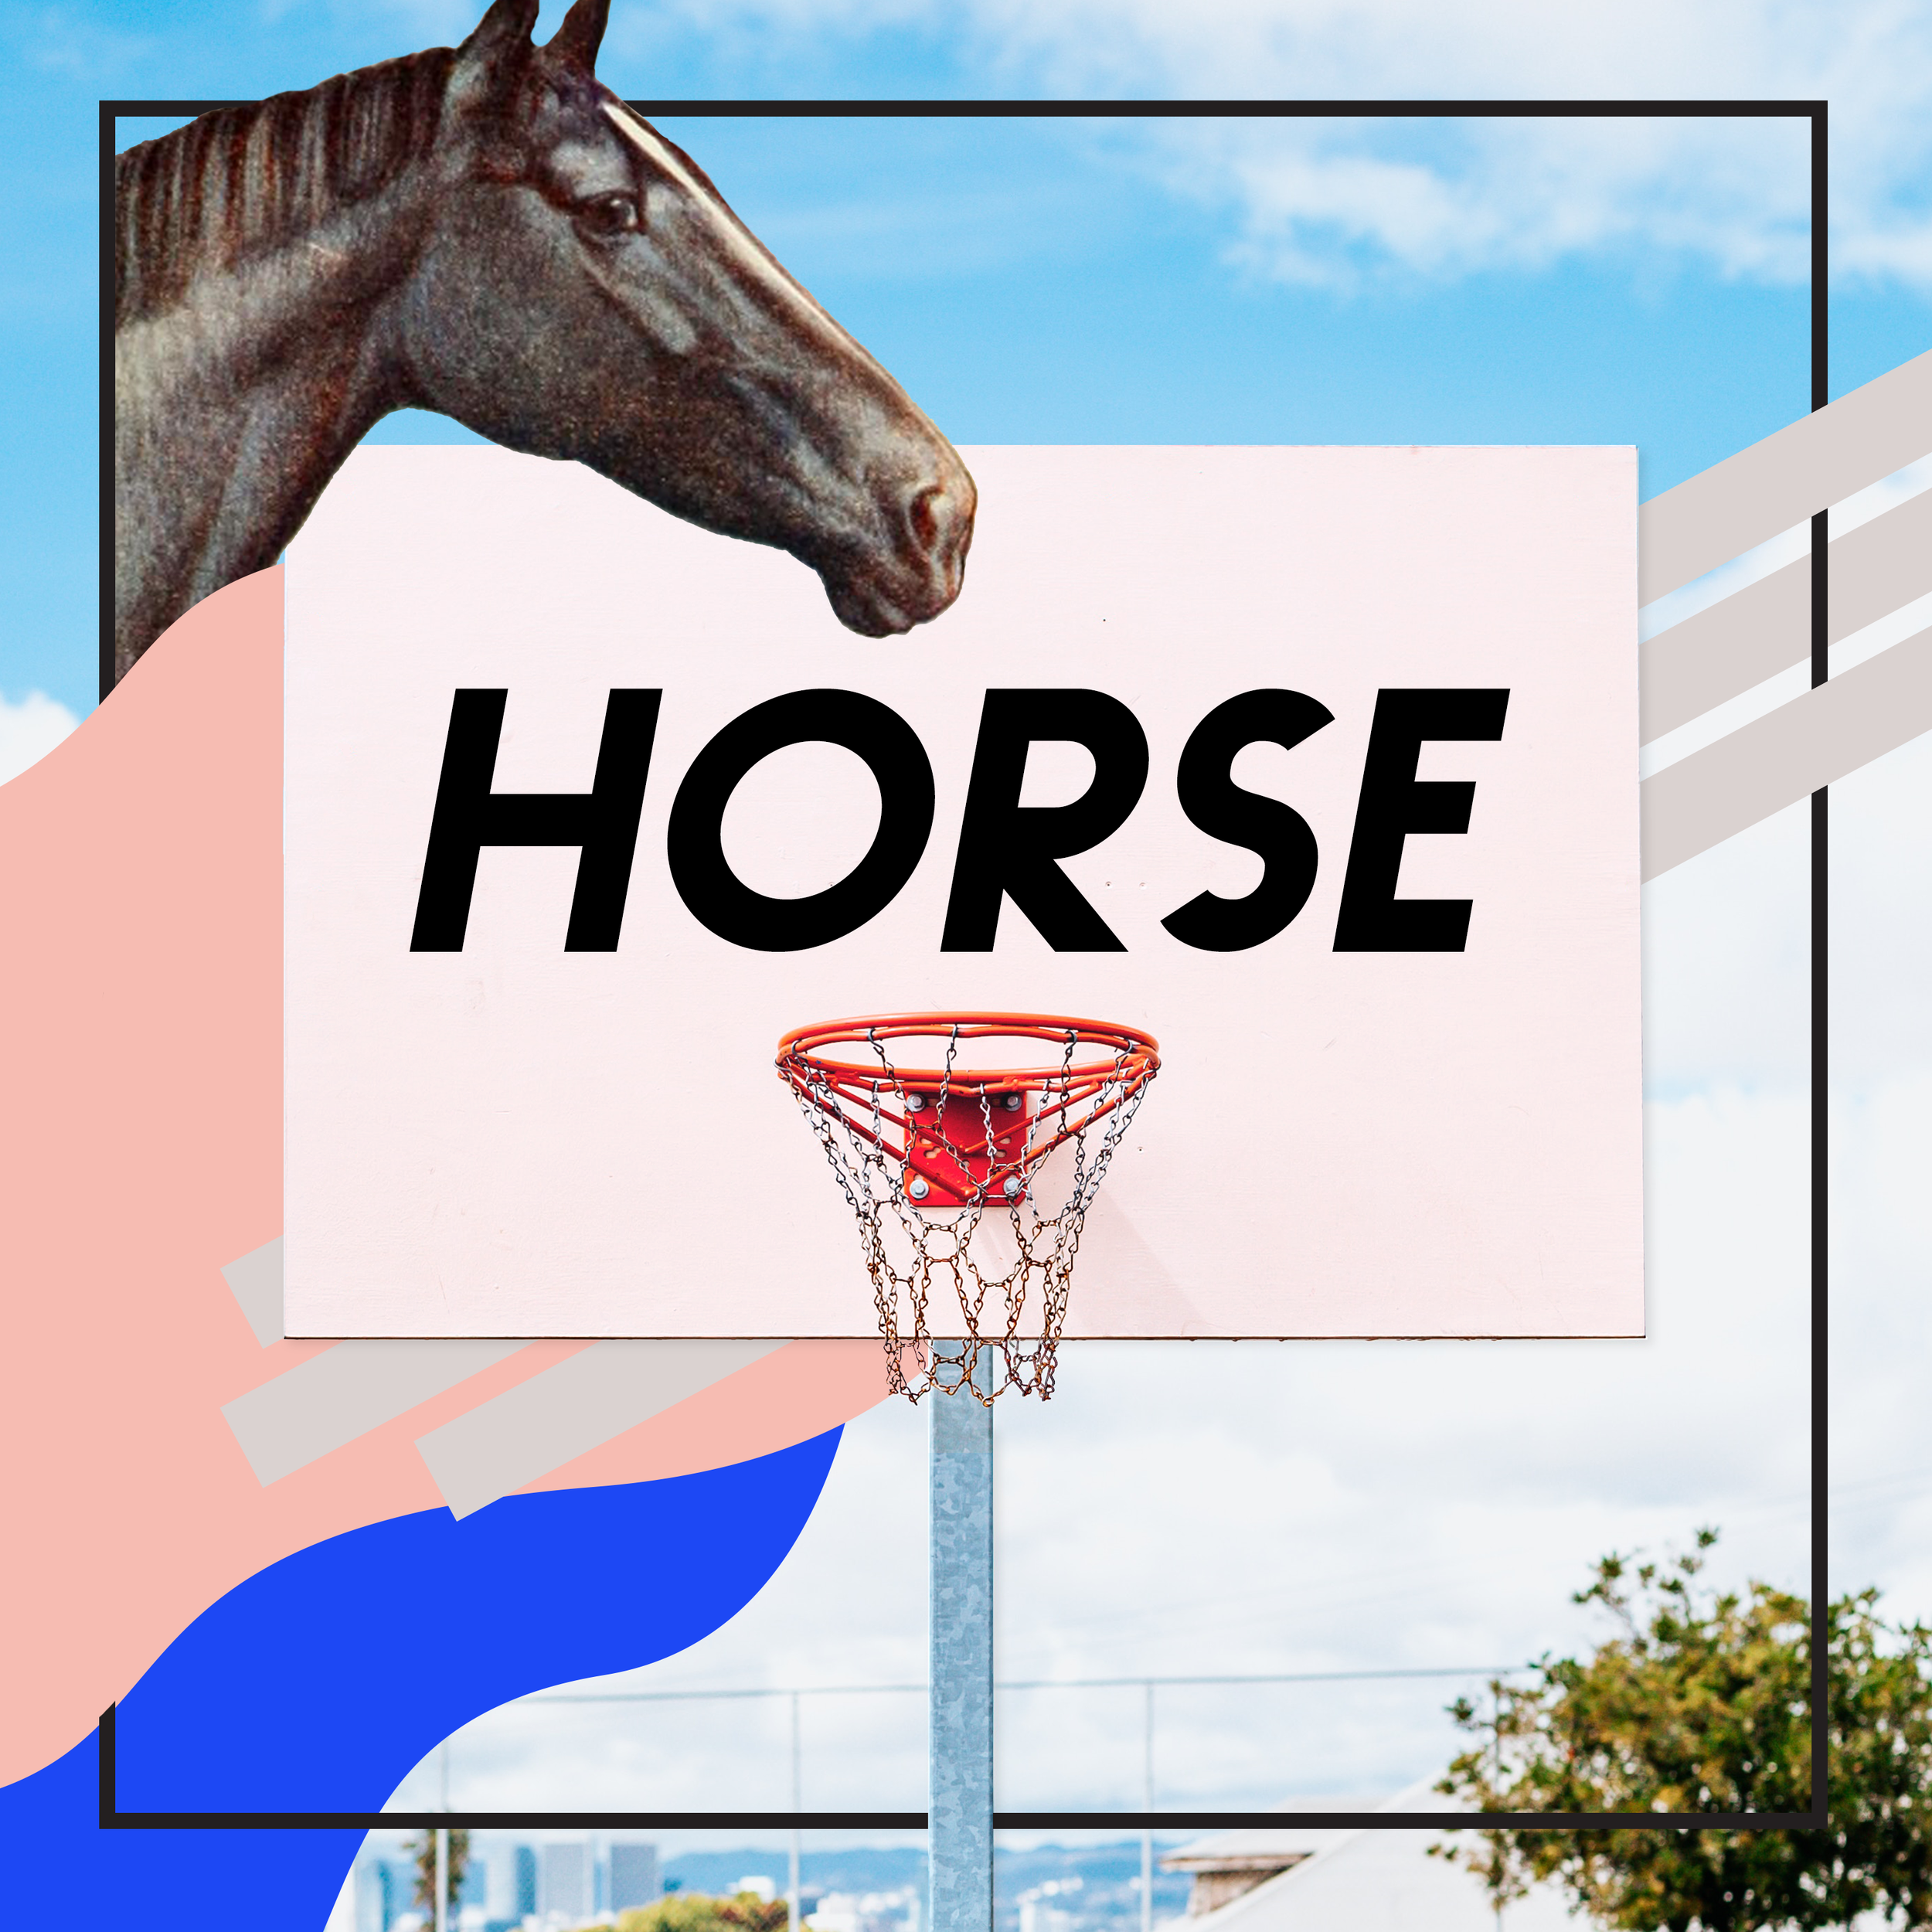 HORSE   A basketball podcast about everything except the wins and losses. We talk beefs, dig into Internet drama, and have fun. We're here to prove that basketball is entertaining to follow for all fans, whether you're actively watching the games or not.  The NBA is now a 365-day league and it's never been more present in pop culture. From Kevin Durant's burner accounts to LeBron taking his talents anywhere to trusting the Process, the NBA is becoming a pop culture requirement. At the same time, sports can have gatekeepers that make it insular and frustrating for people who aren't die hard fans.   @Horse_Hoops  |  Patreon